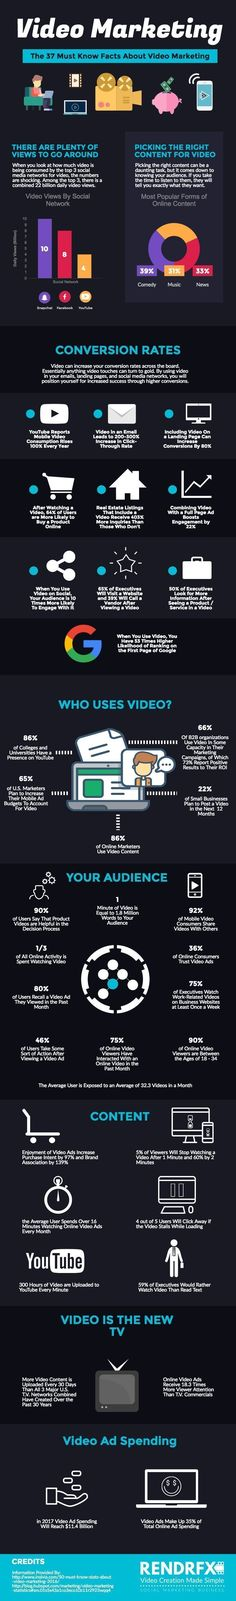 37 Video Marketing Statistics You Need To Know For 2017 [Infographic] http://www.rendrfx.com/video-marketing-statistics #VideoMarketing #SocialMediaMarketing #Video #videomarketing2017